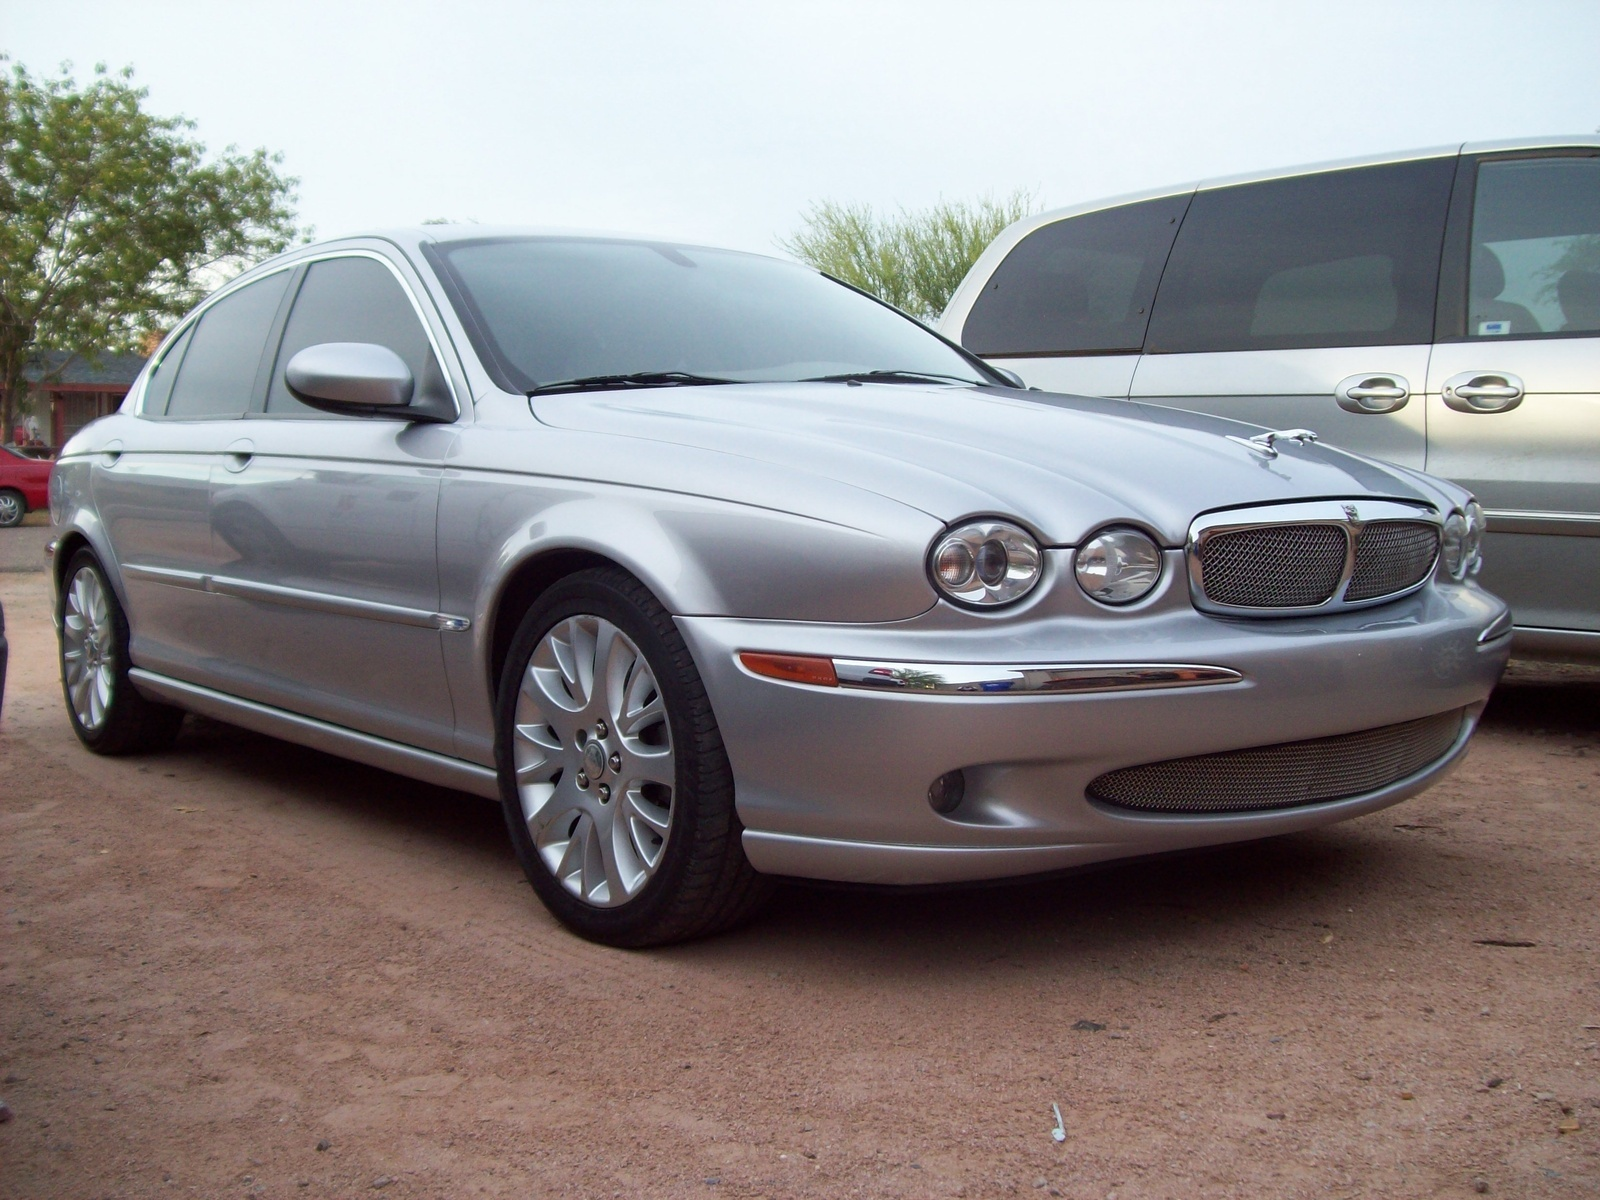 2003 jaguar x type 3.0